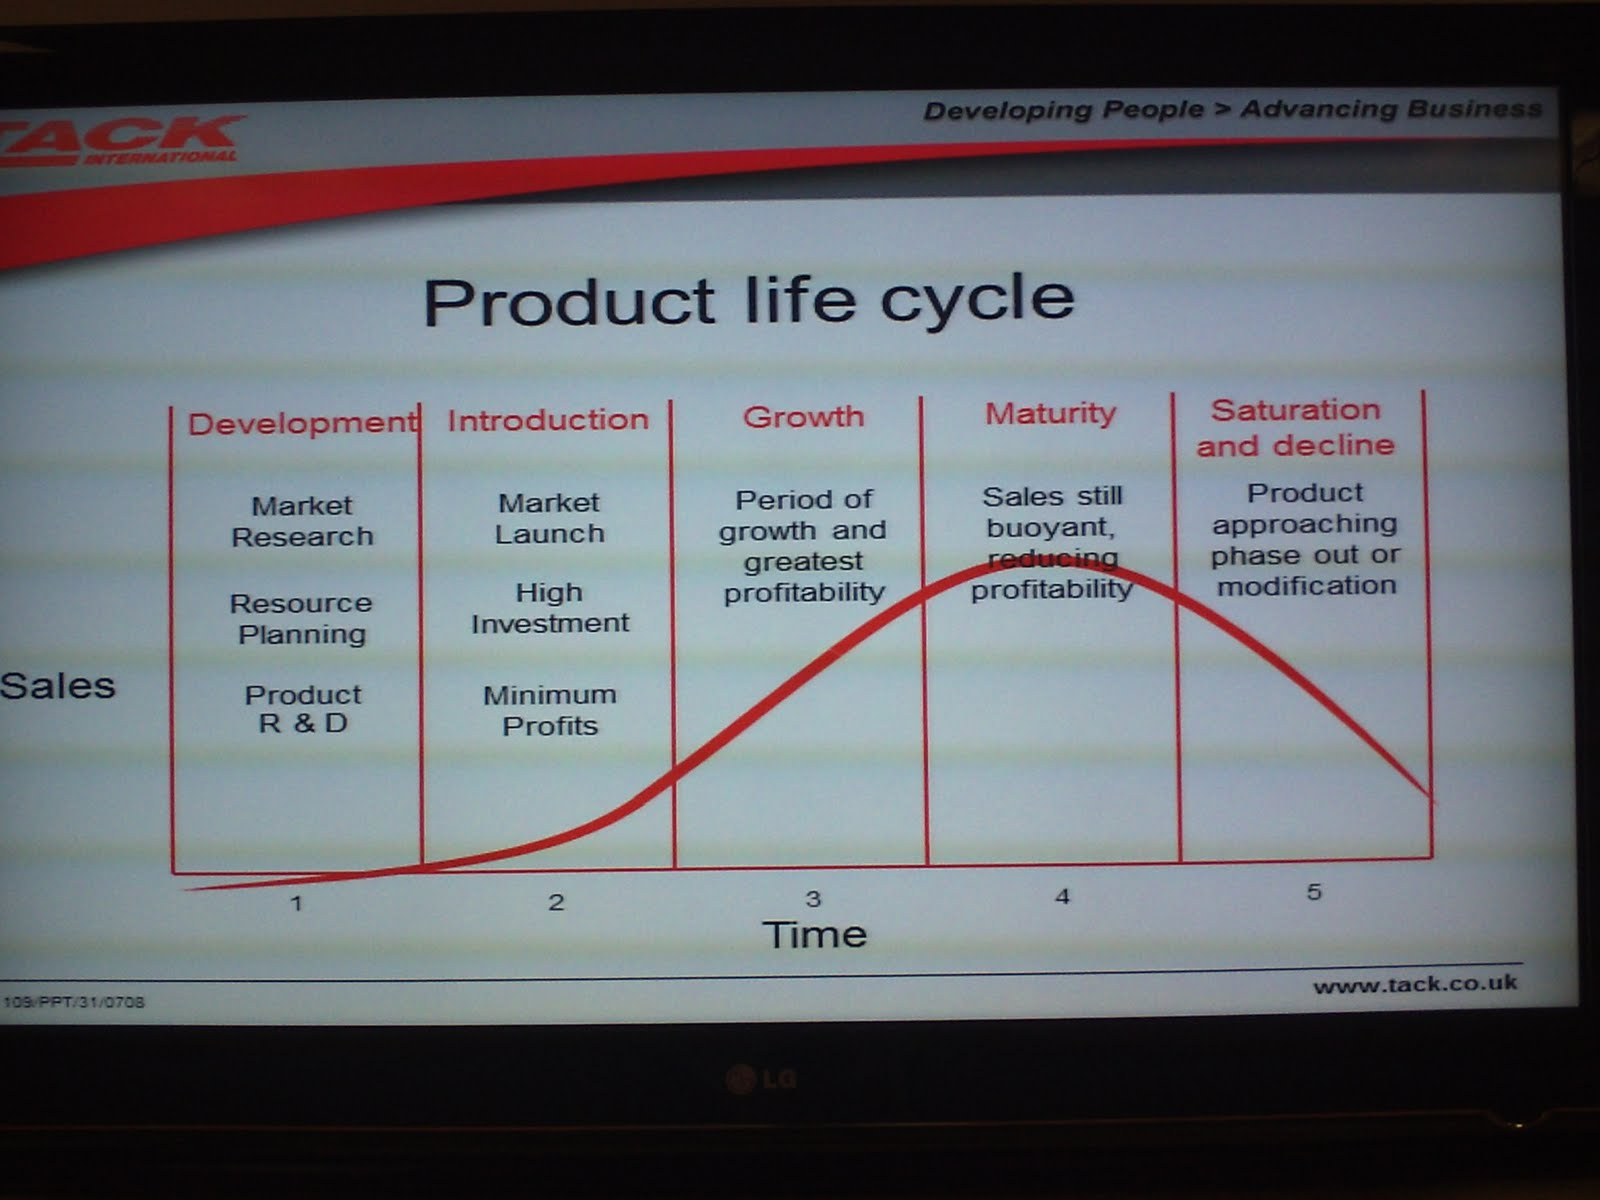 product life cycle stage of cadbury Are you looking for product life cycle of cadbury  get details of product life cycle of cadburywe collected most searched pages list related with product life cycle.